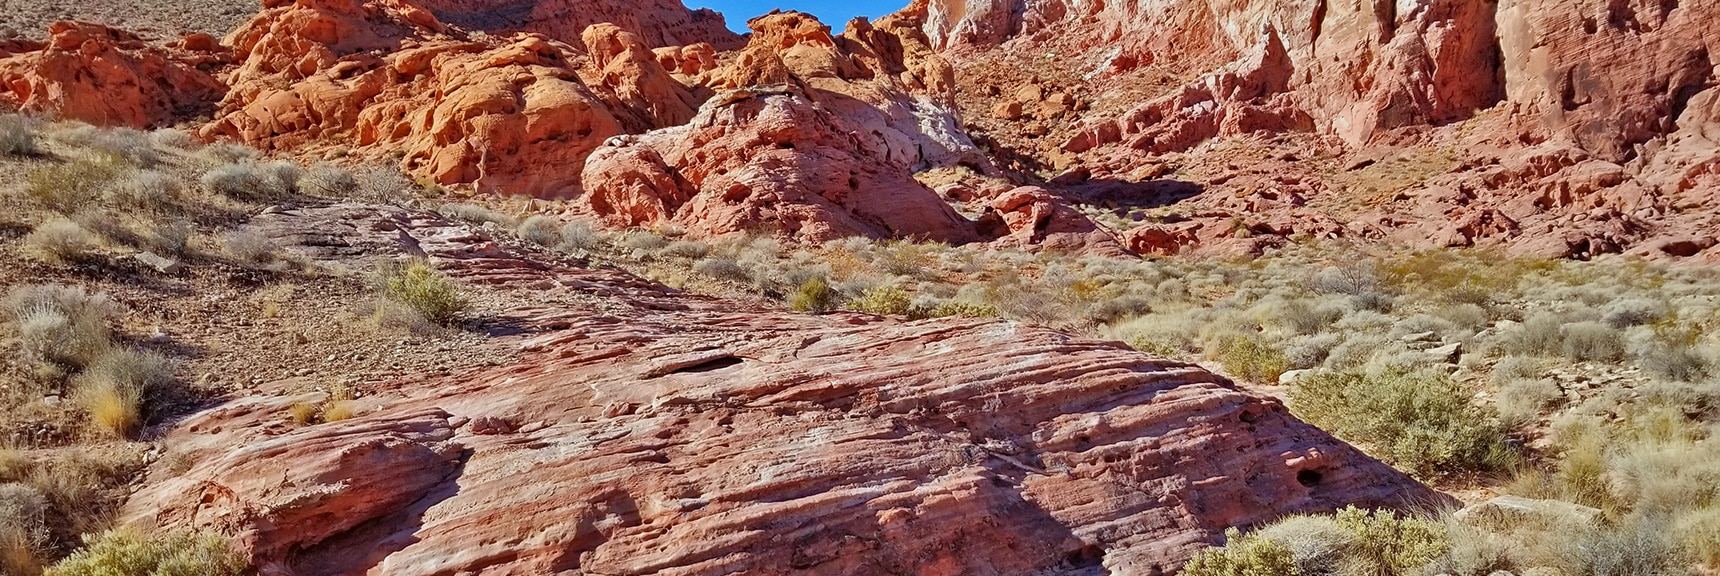 Entering Bowl of Fire | Bowl of Fire, Lake Mead National Recreation Area, Nevada